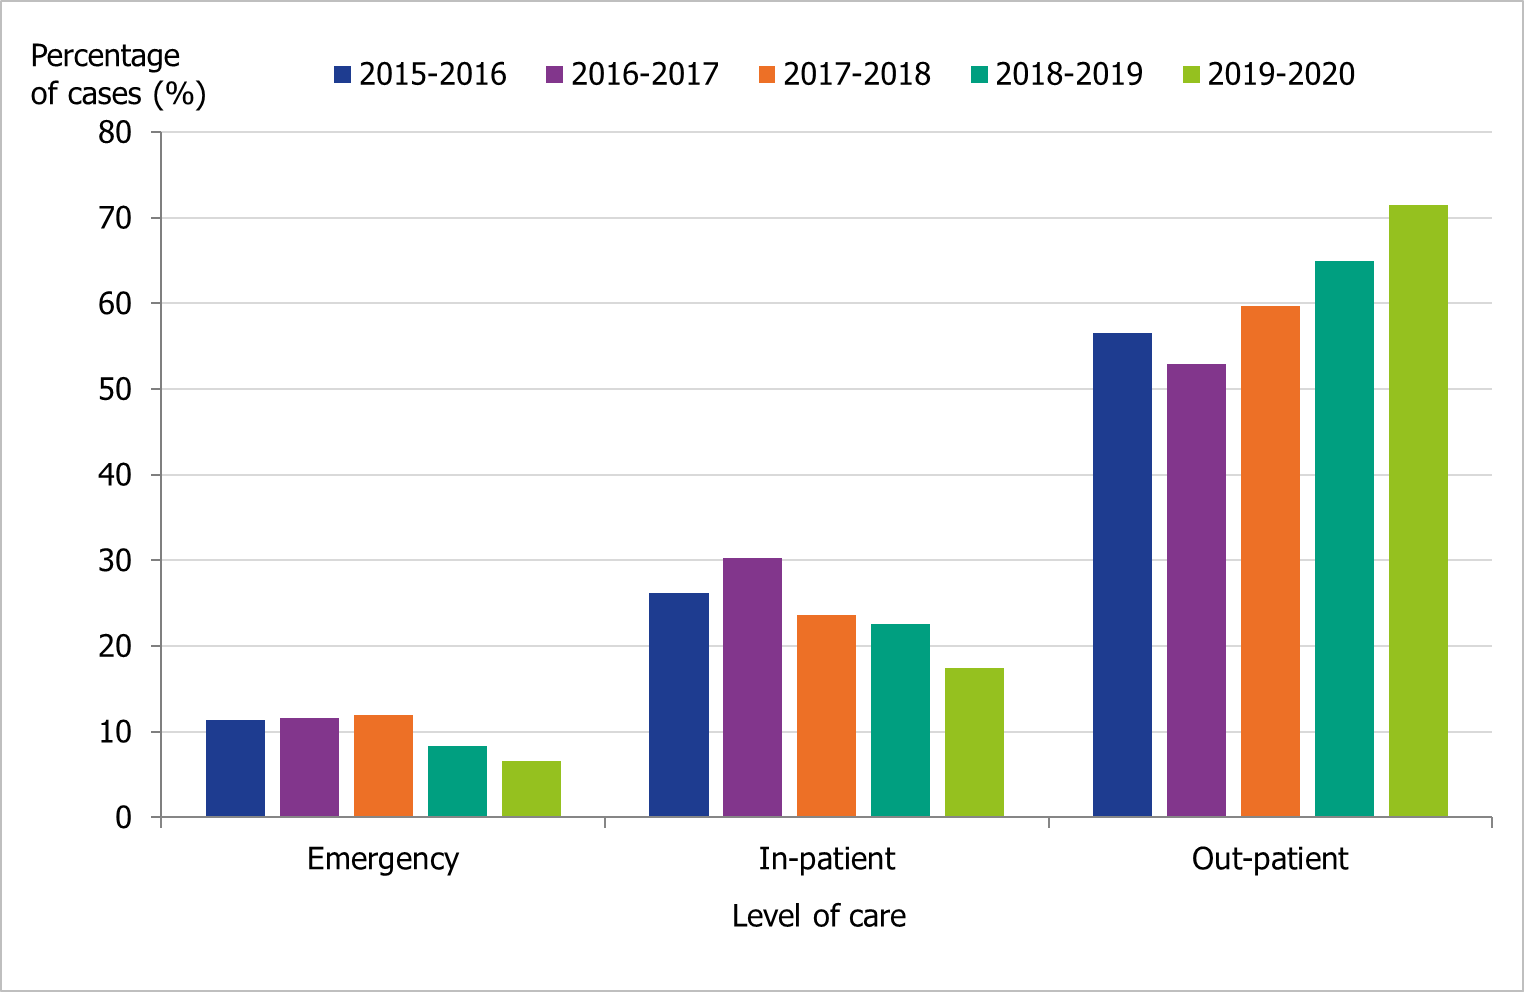 Graph showing the number of laboratory-confirmed influenza cases stratified by level of care at sampling each season. The cases are stratified by emergency, in-patiet or out-patient care.